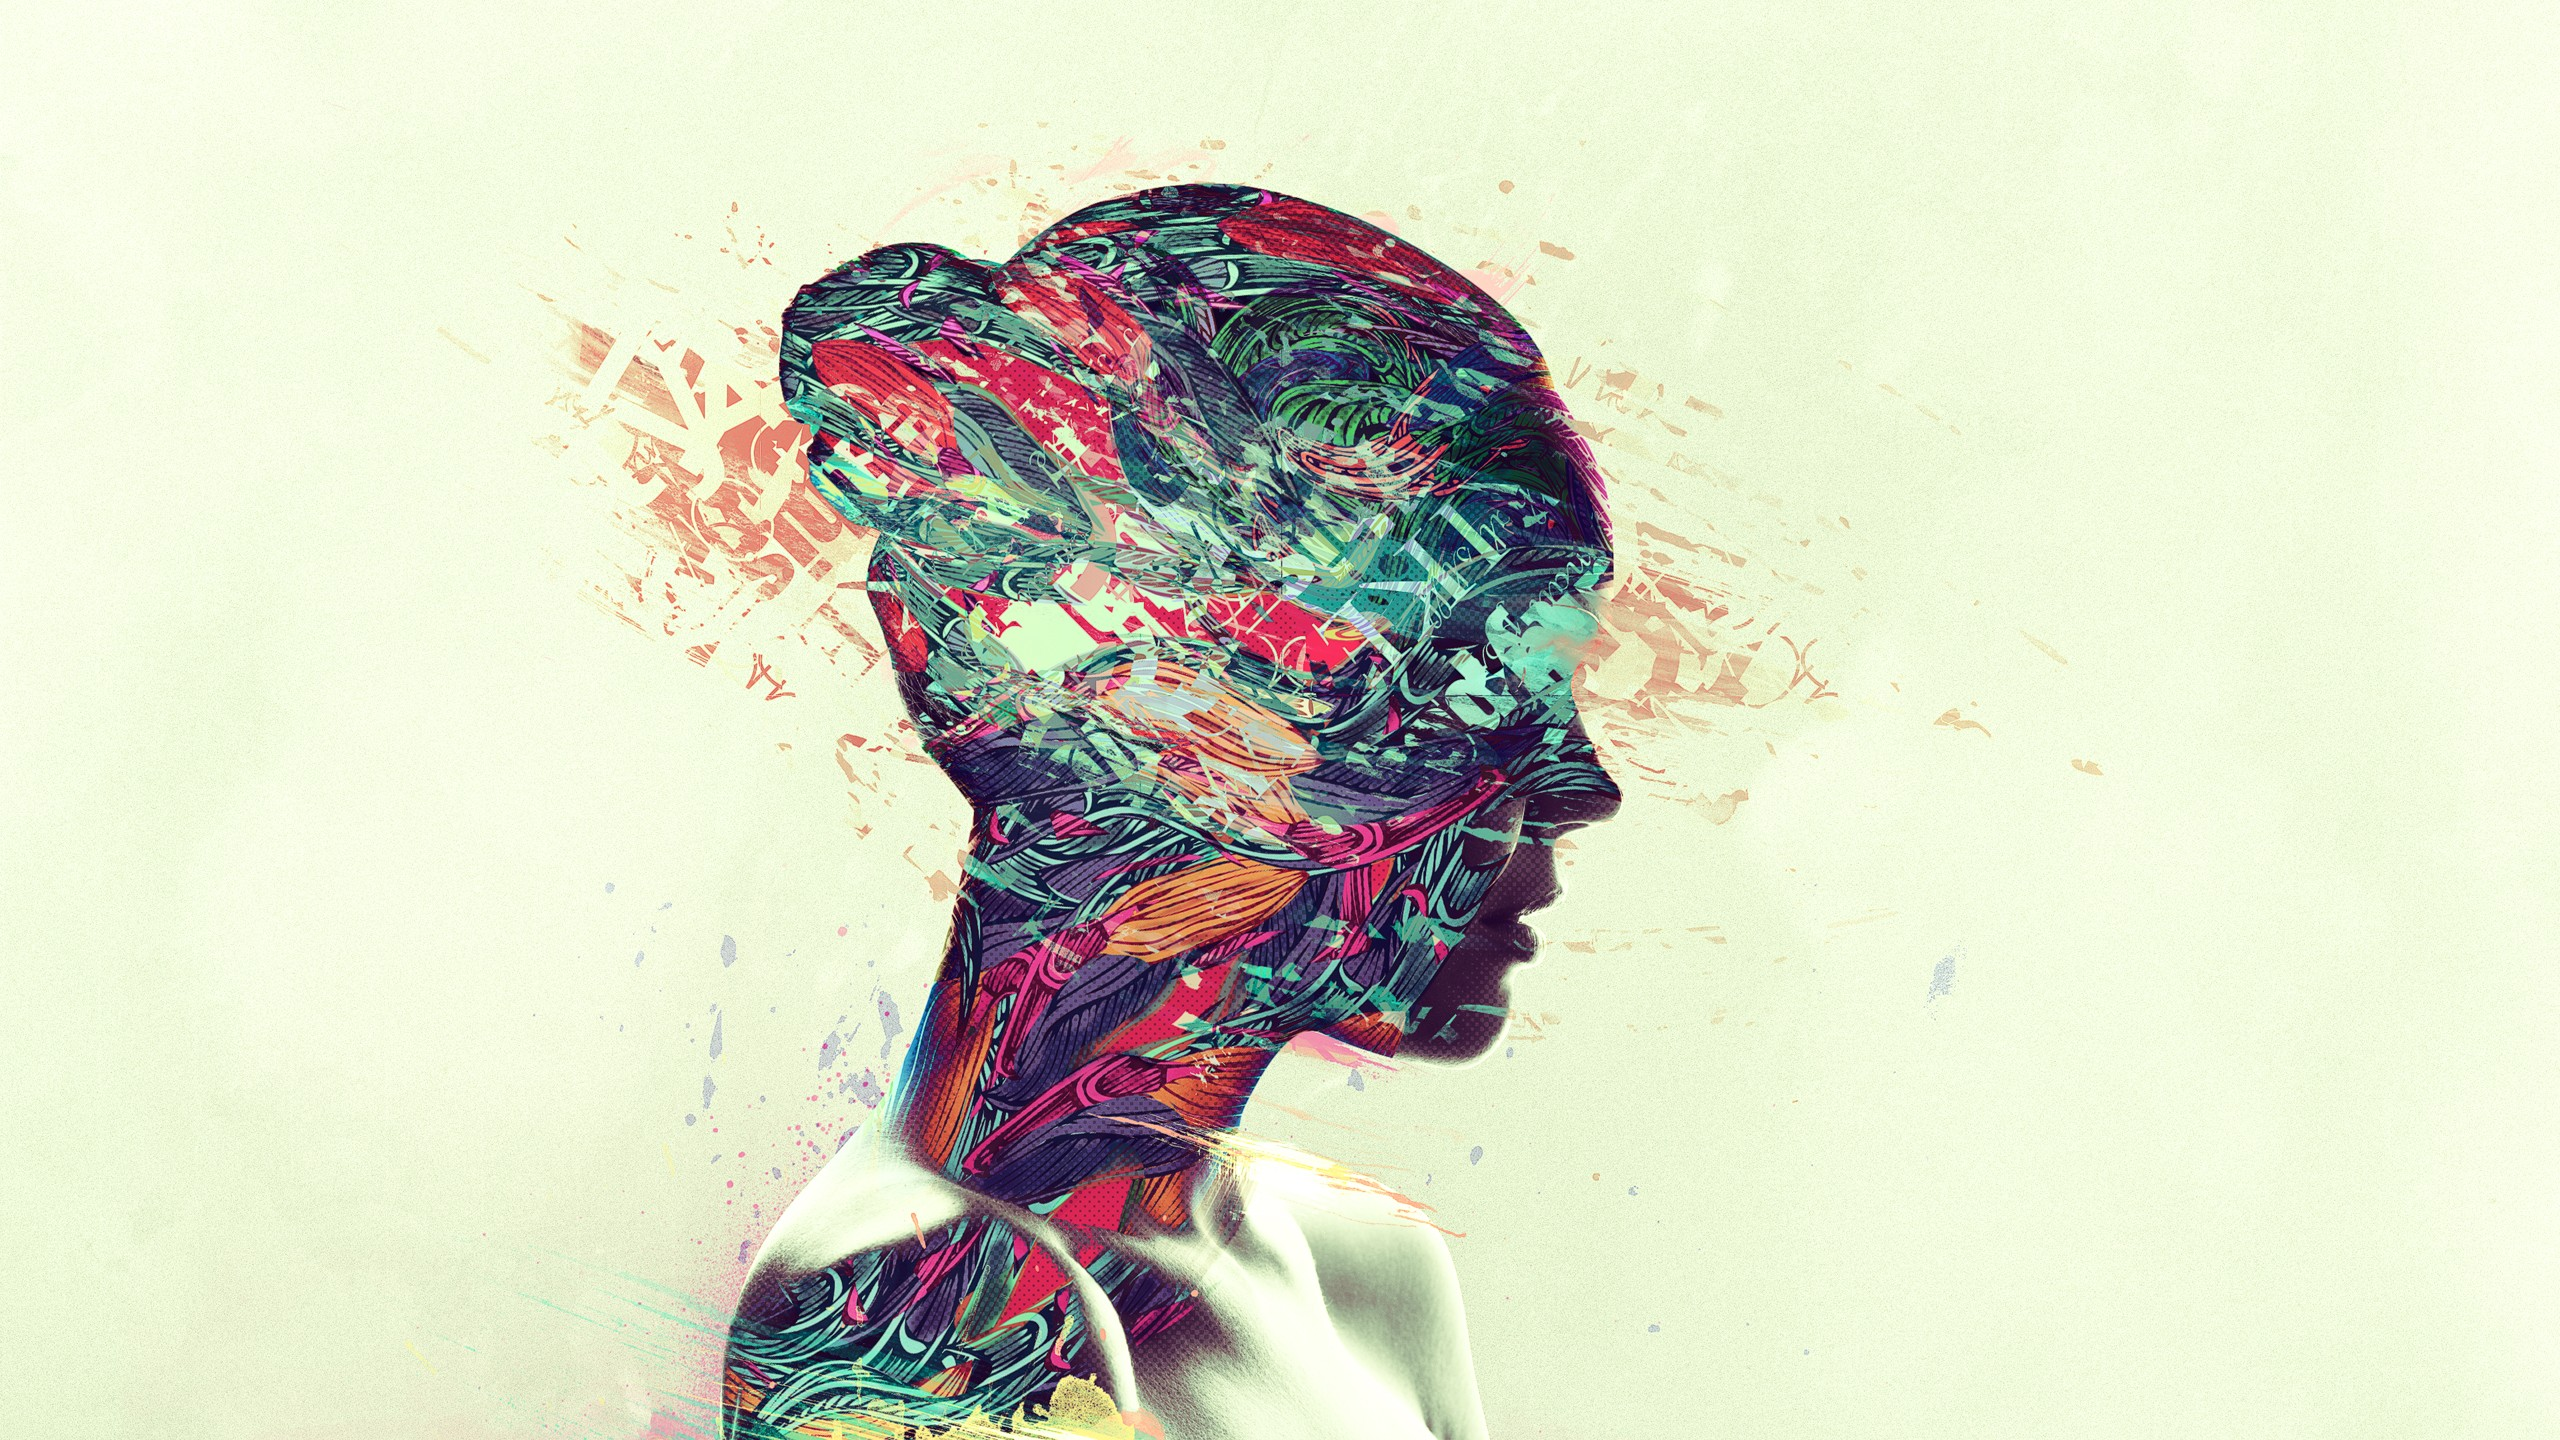 double exposure hd wallpapers - free desktop images and photos